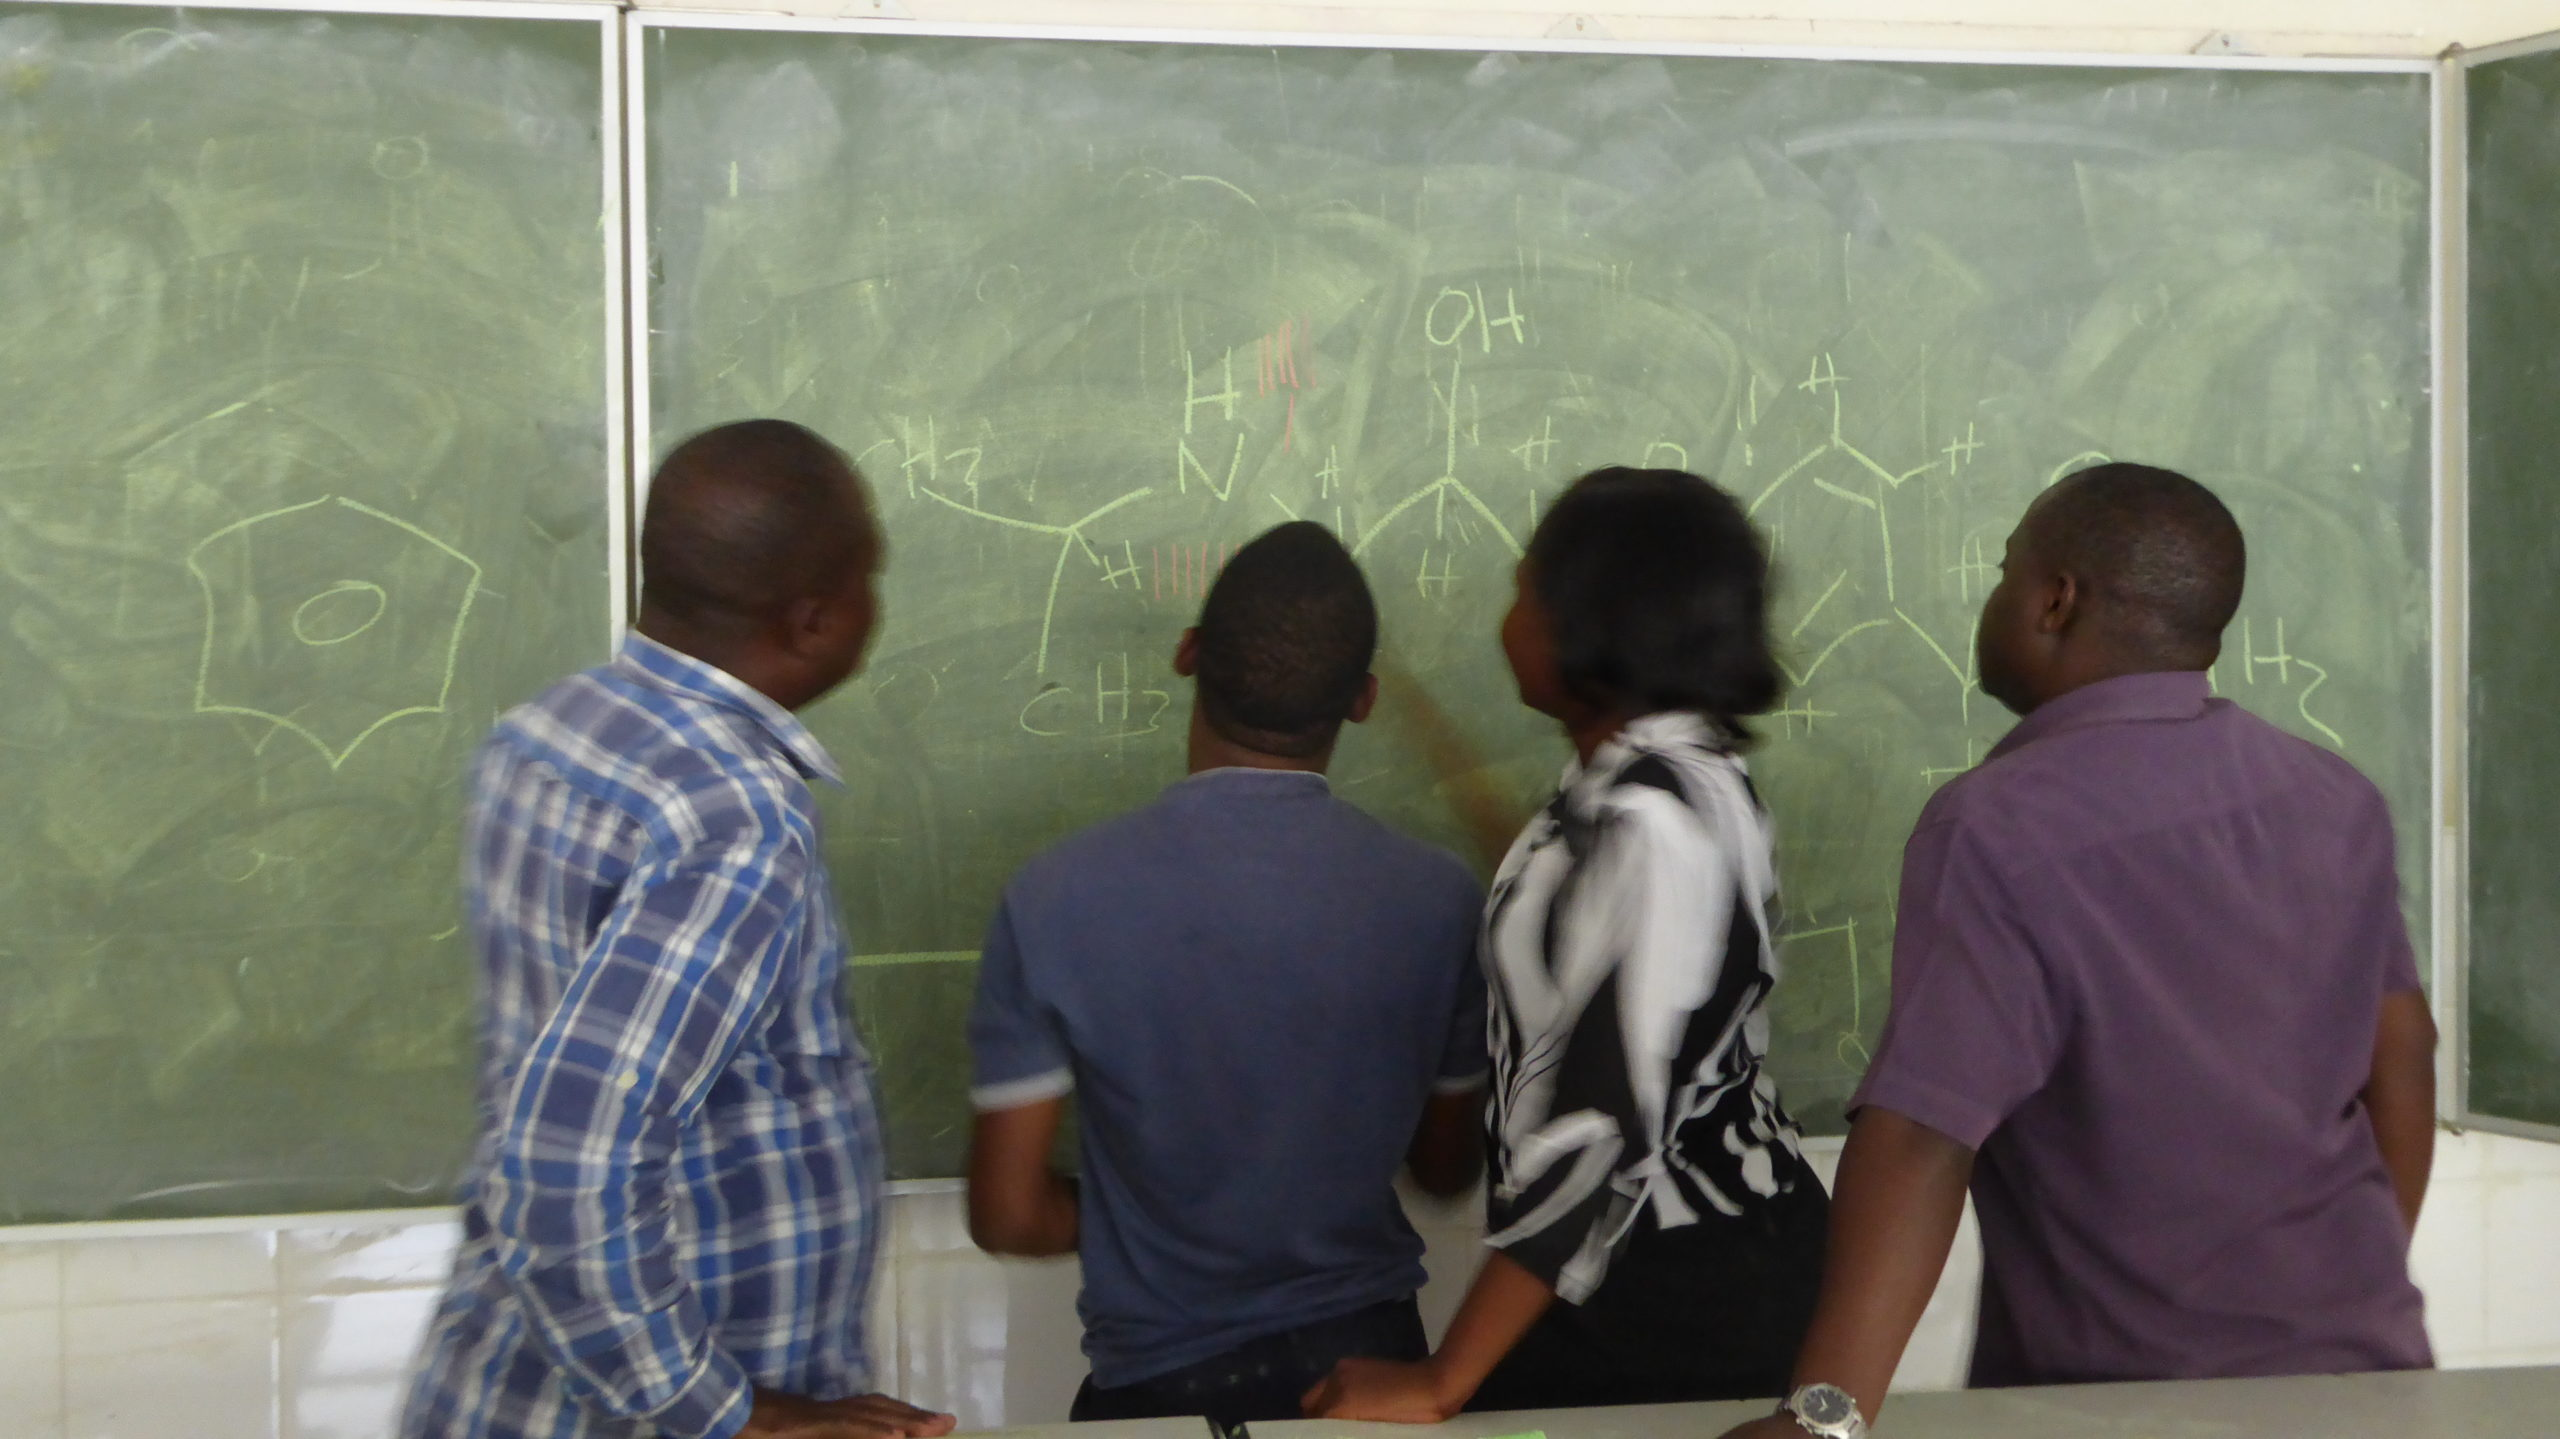 Chemistry class problem solving at the blackboard